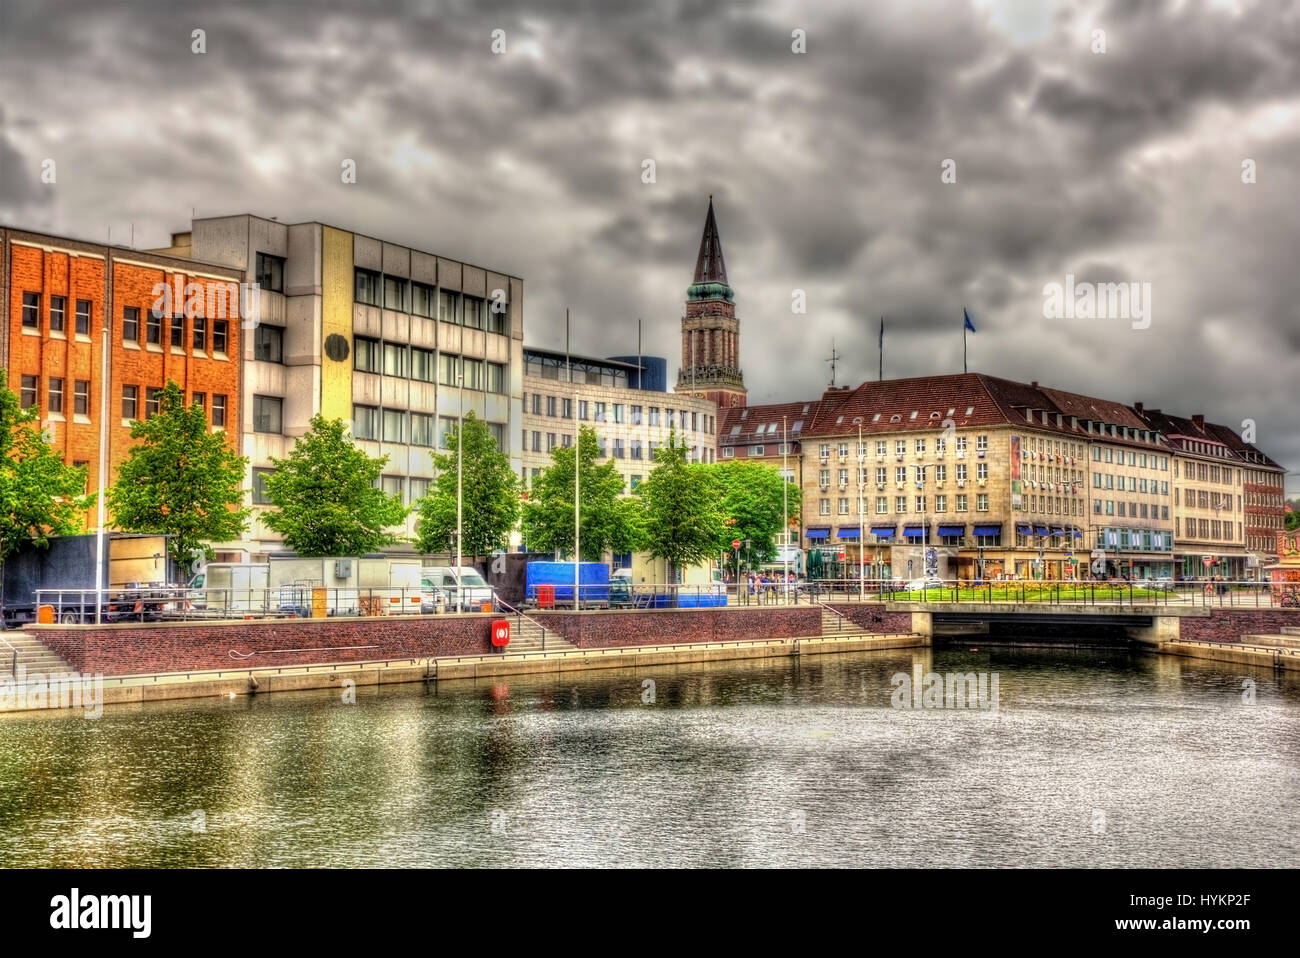 view of the city center of kiel germany stock photo royalty free image 137502695 alamy. Black Bedroom Furniture Sets. Home Design Ideas